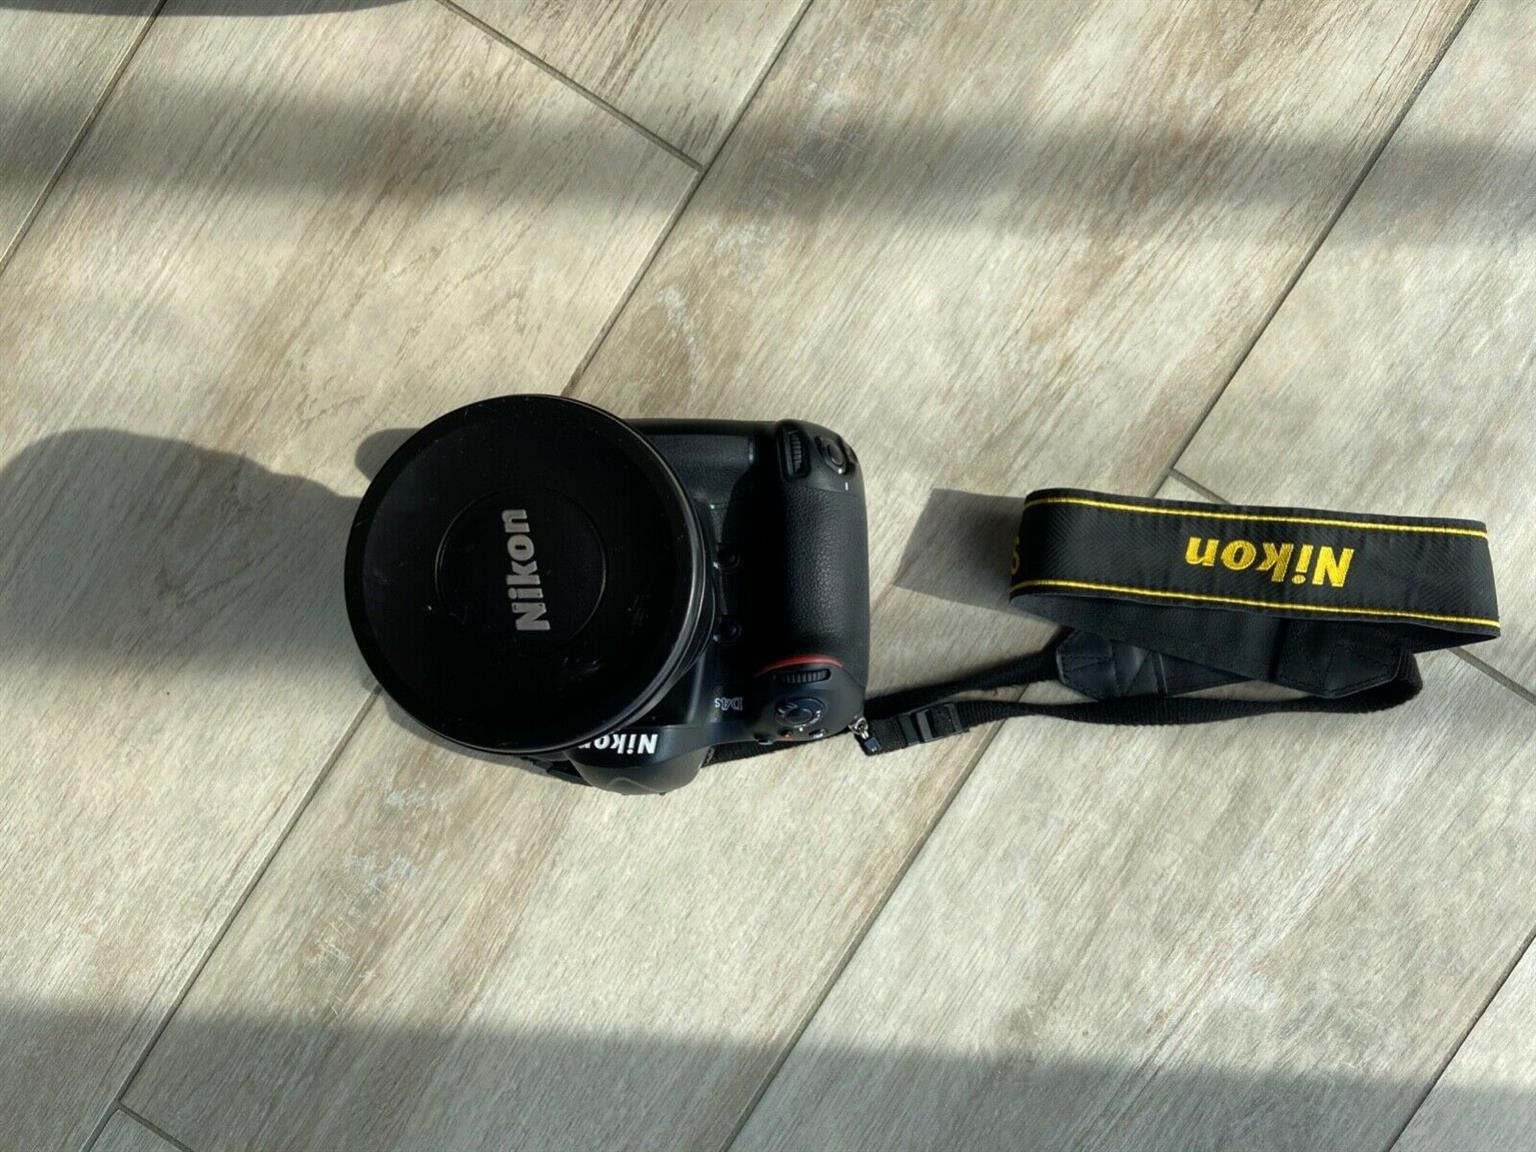 used Nikon d4s with 14-24mm and Nikkor 50mm lenses